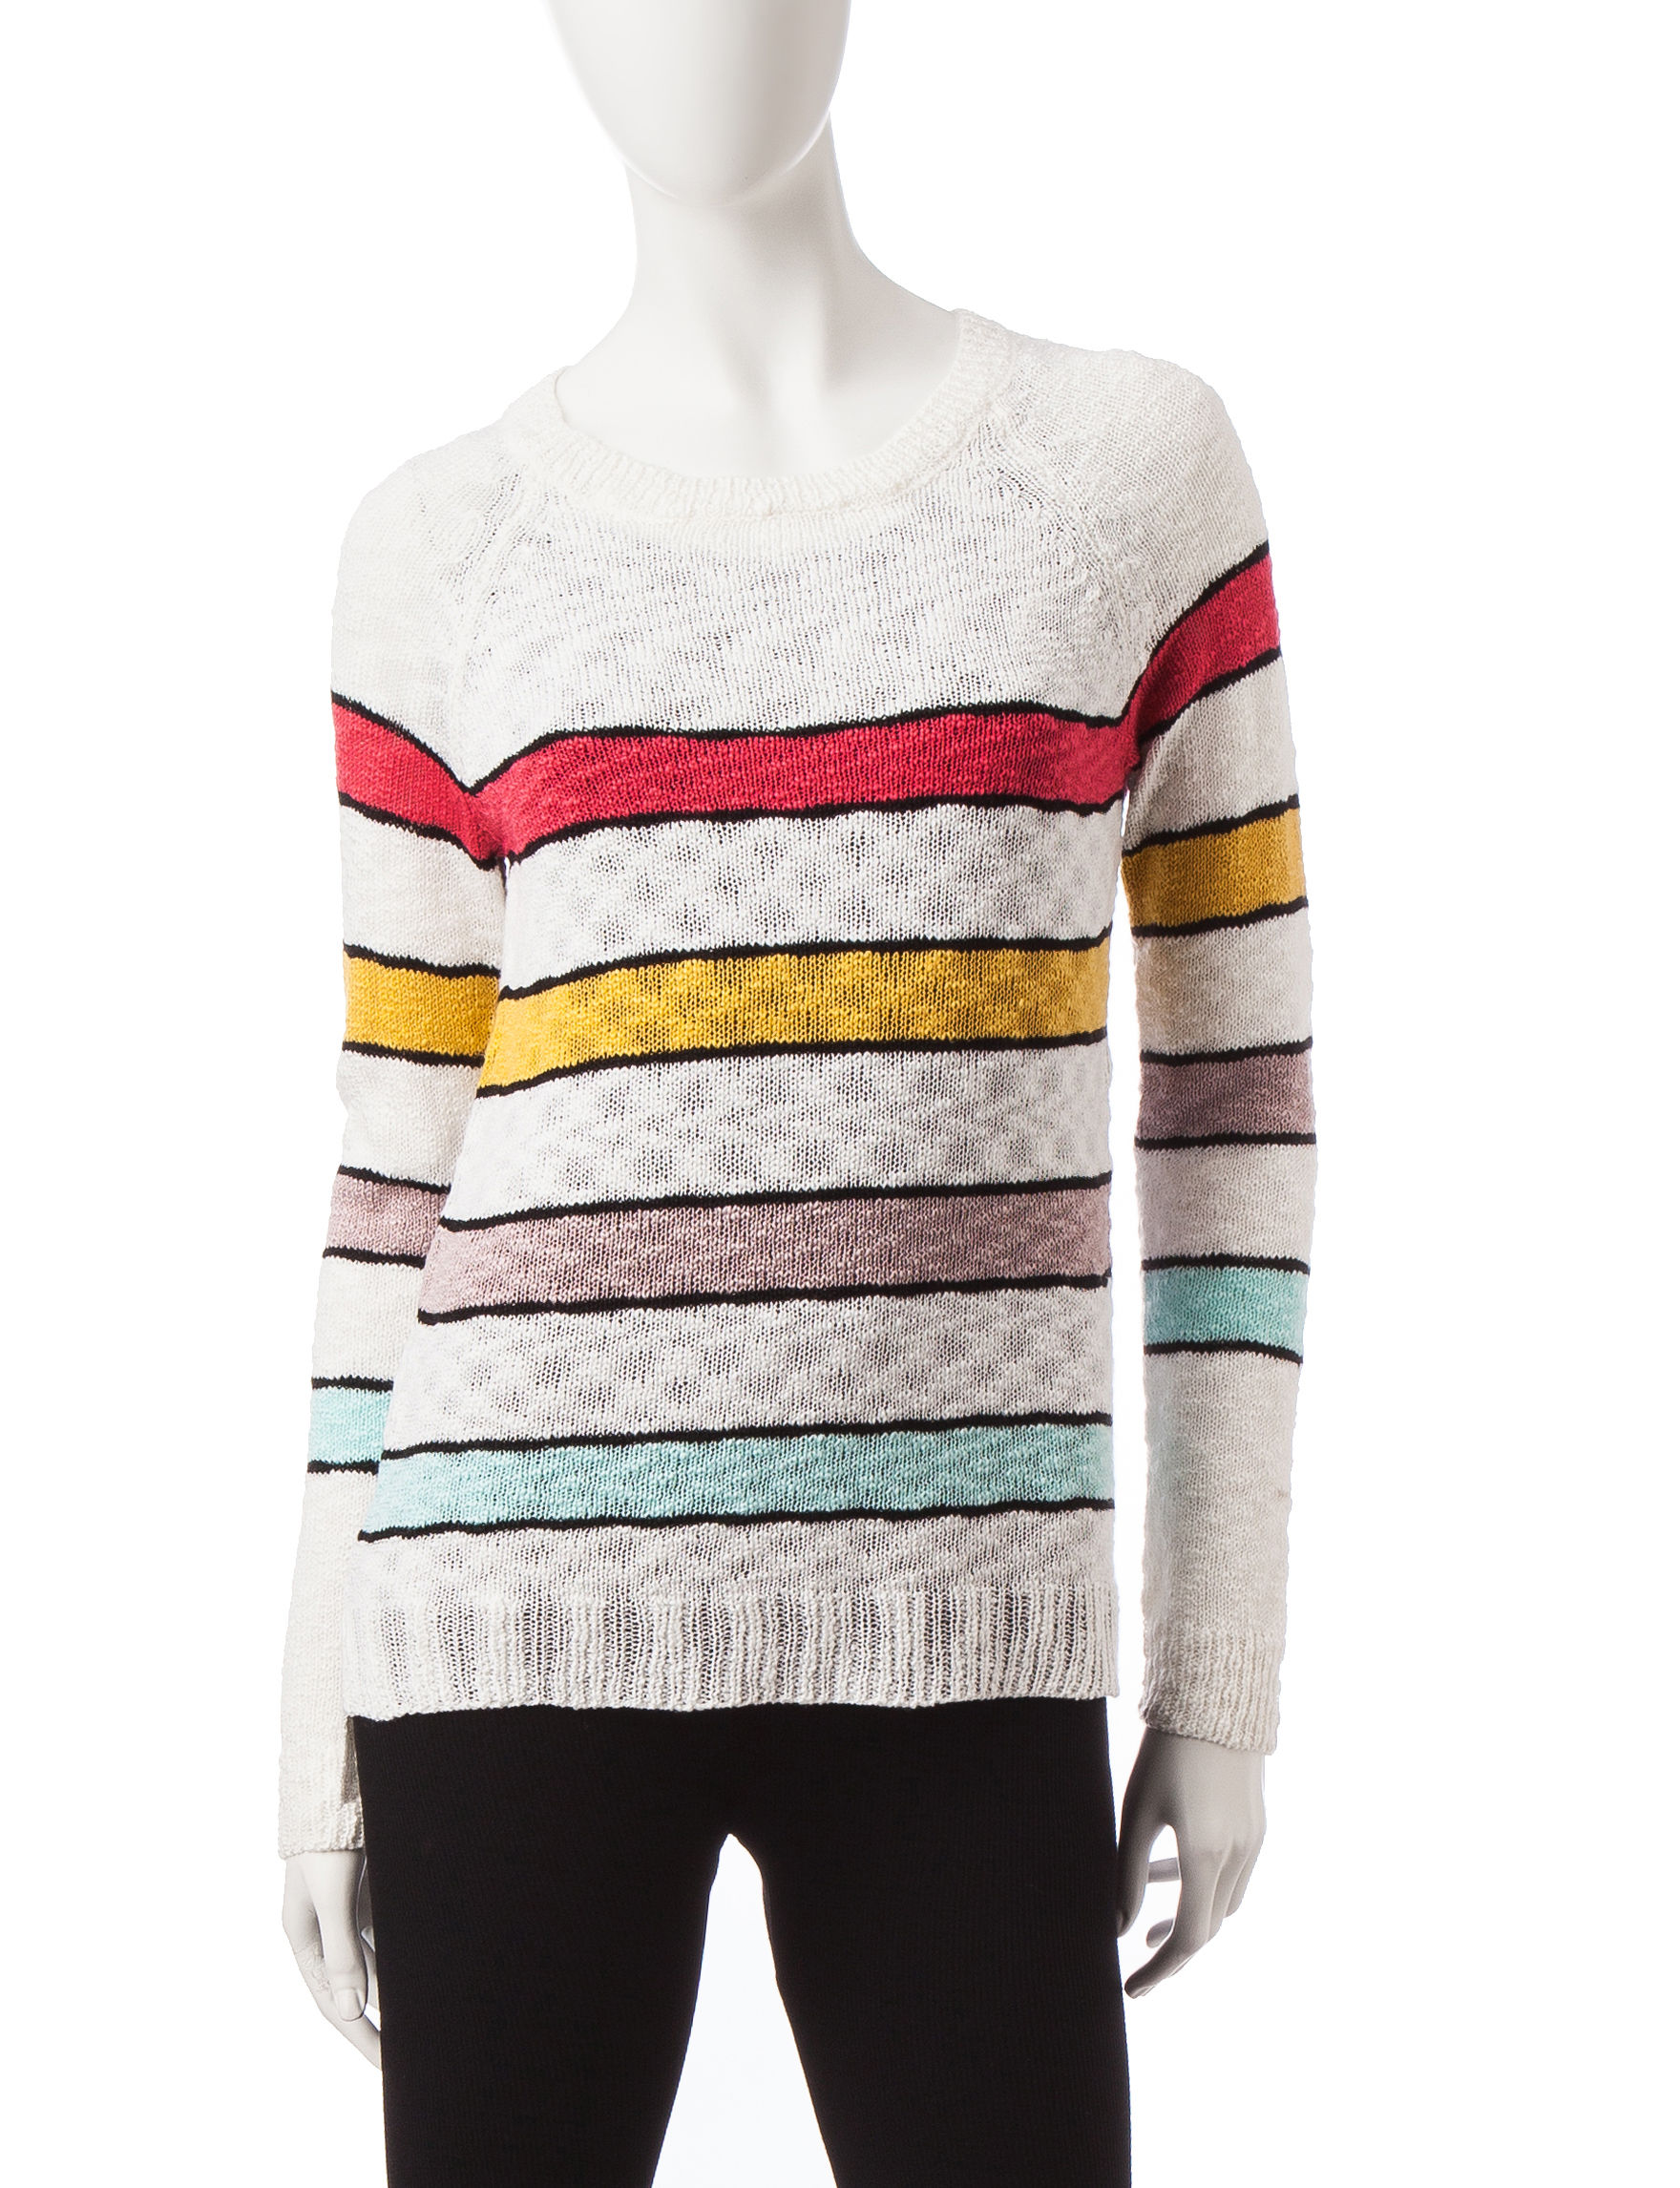 Cloud Chaser White / Black Pull-overs Sweaters